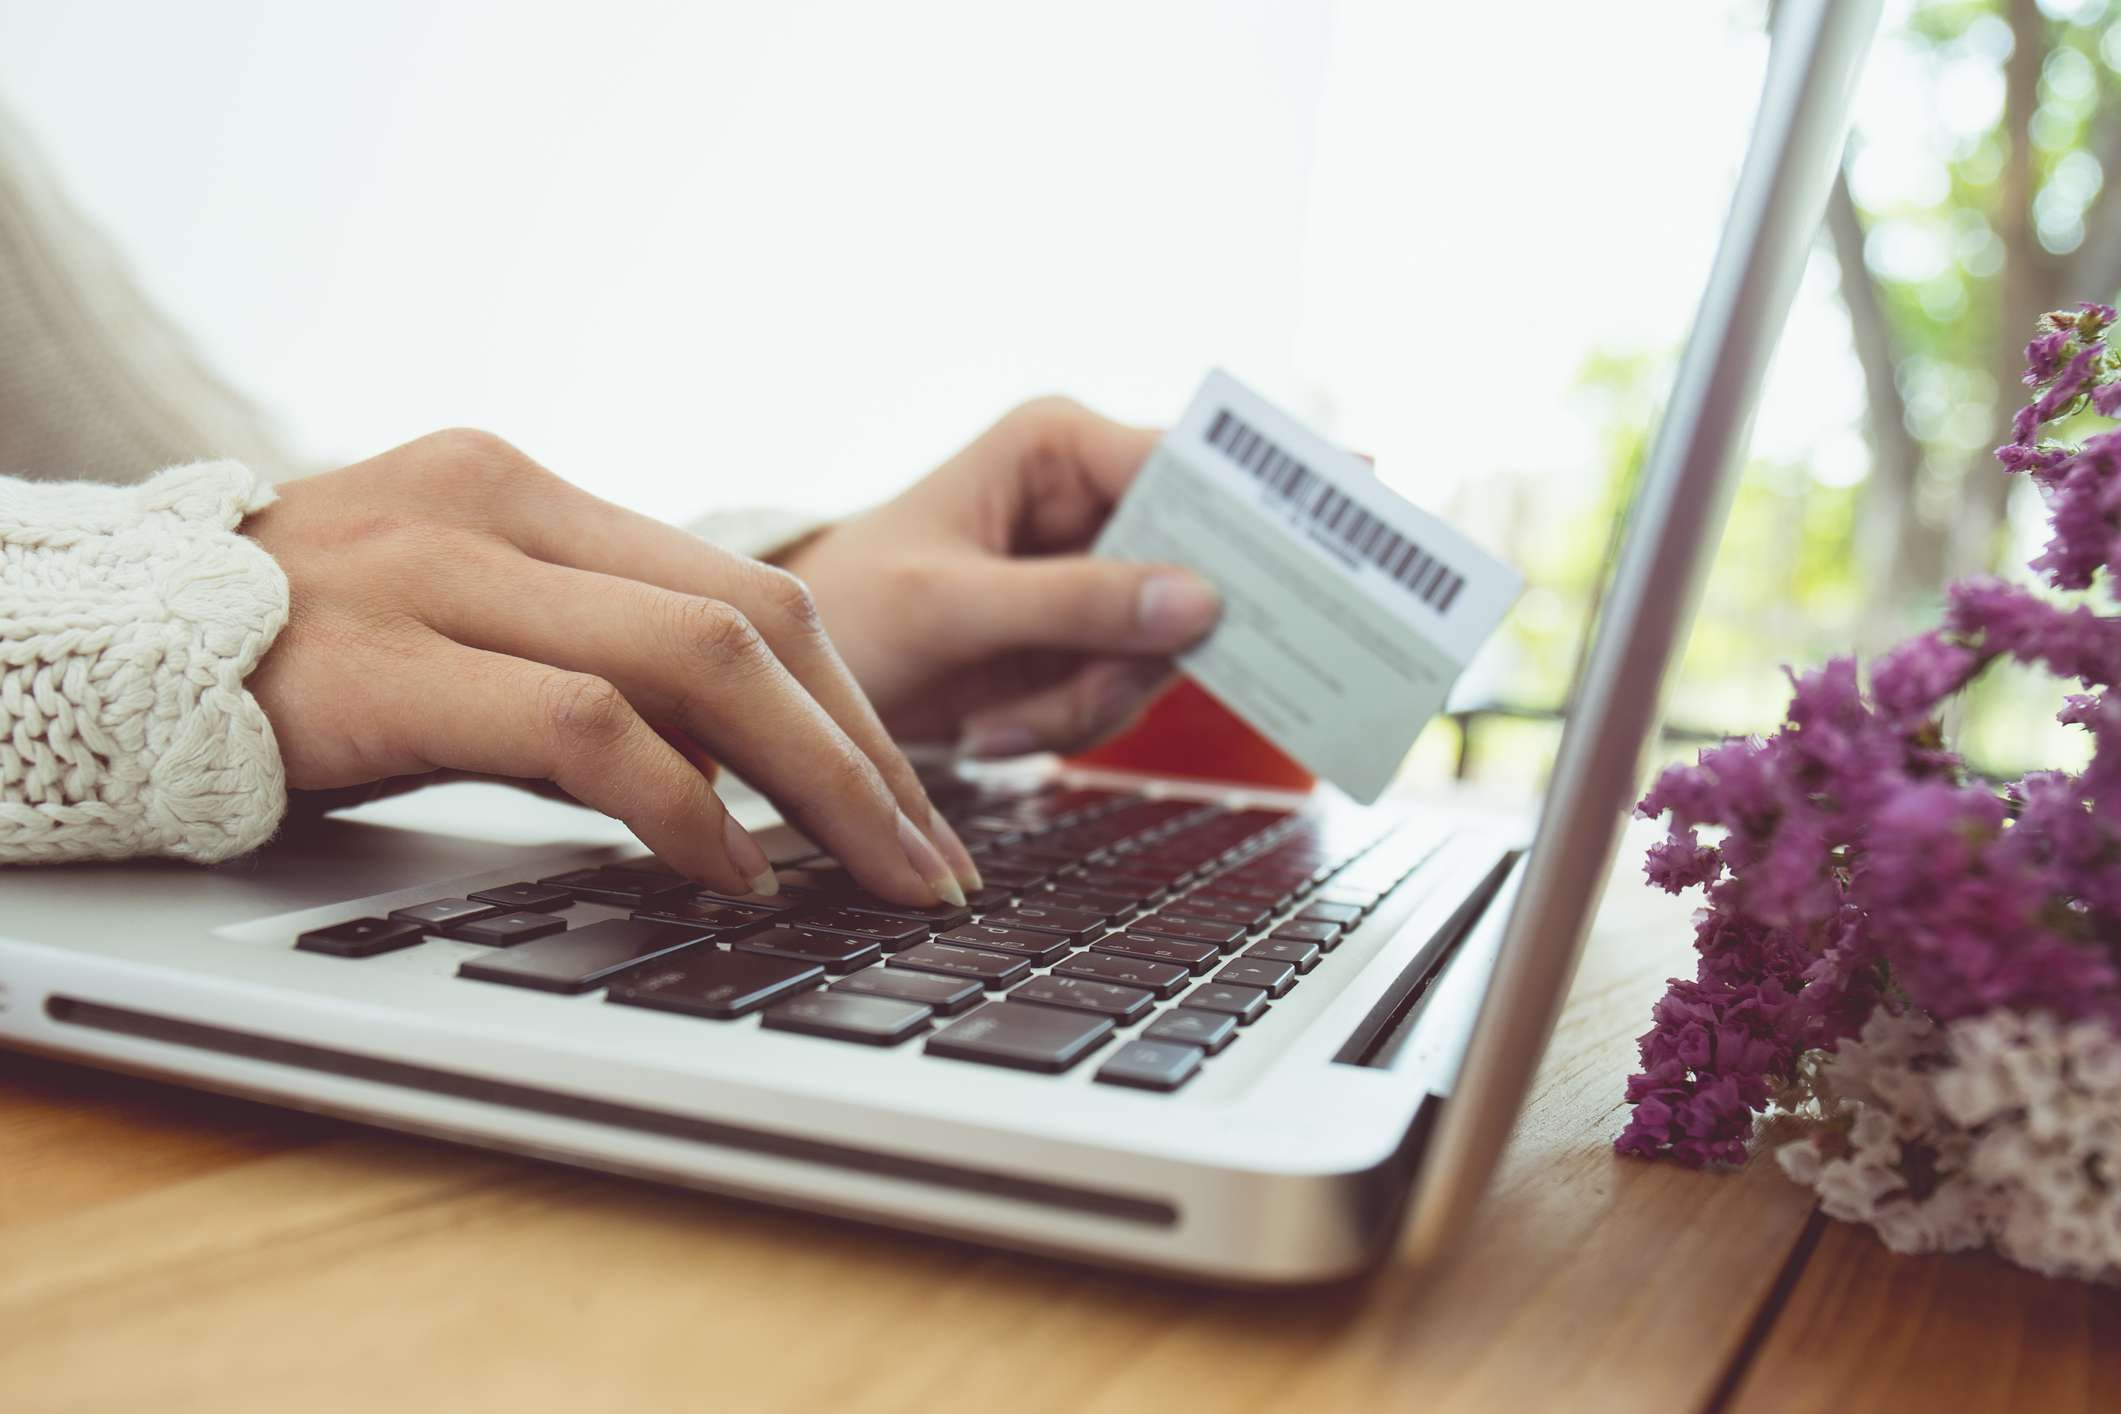 How Do You Know If You Can Trust An Online Credit Company?